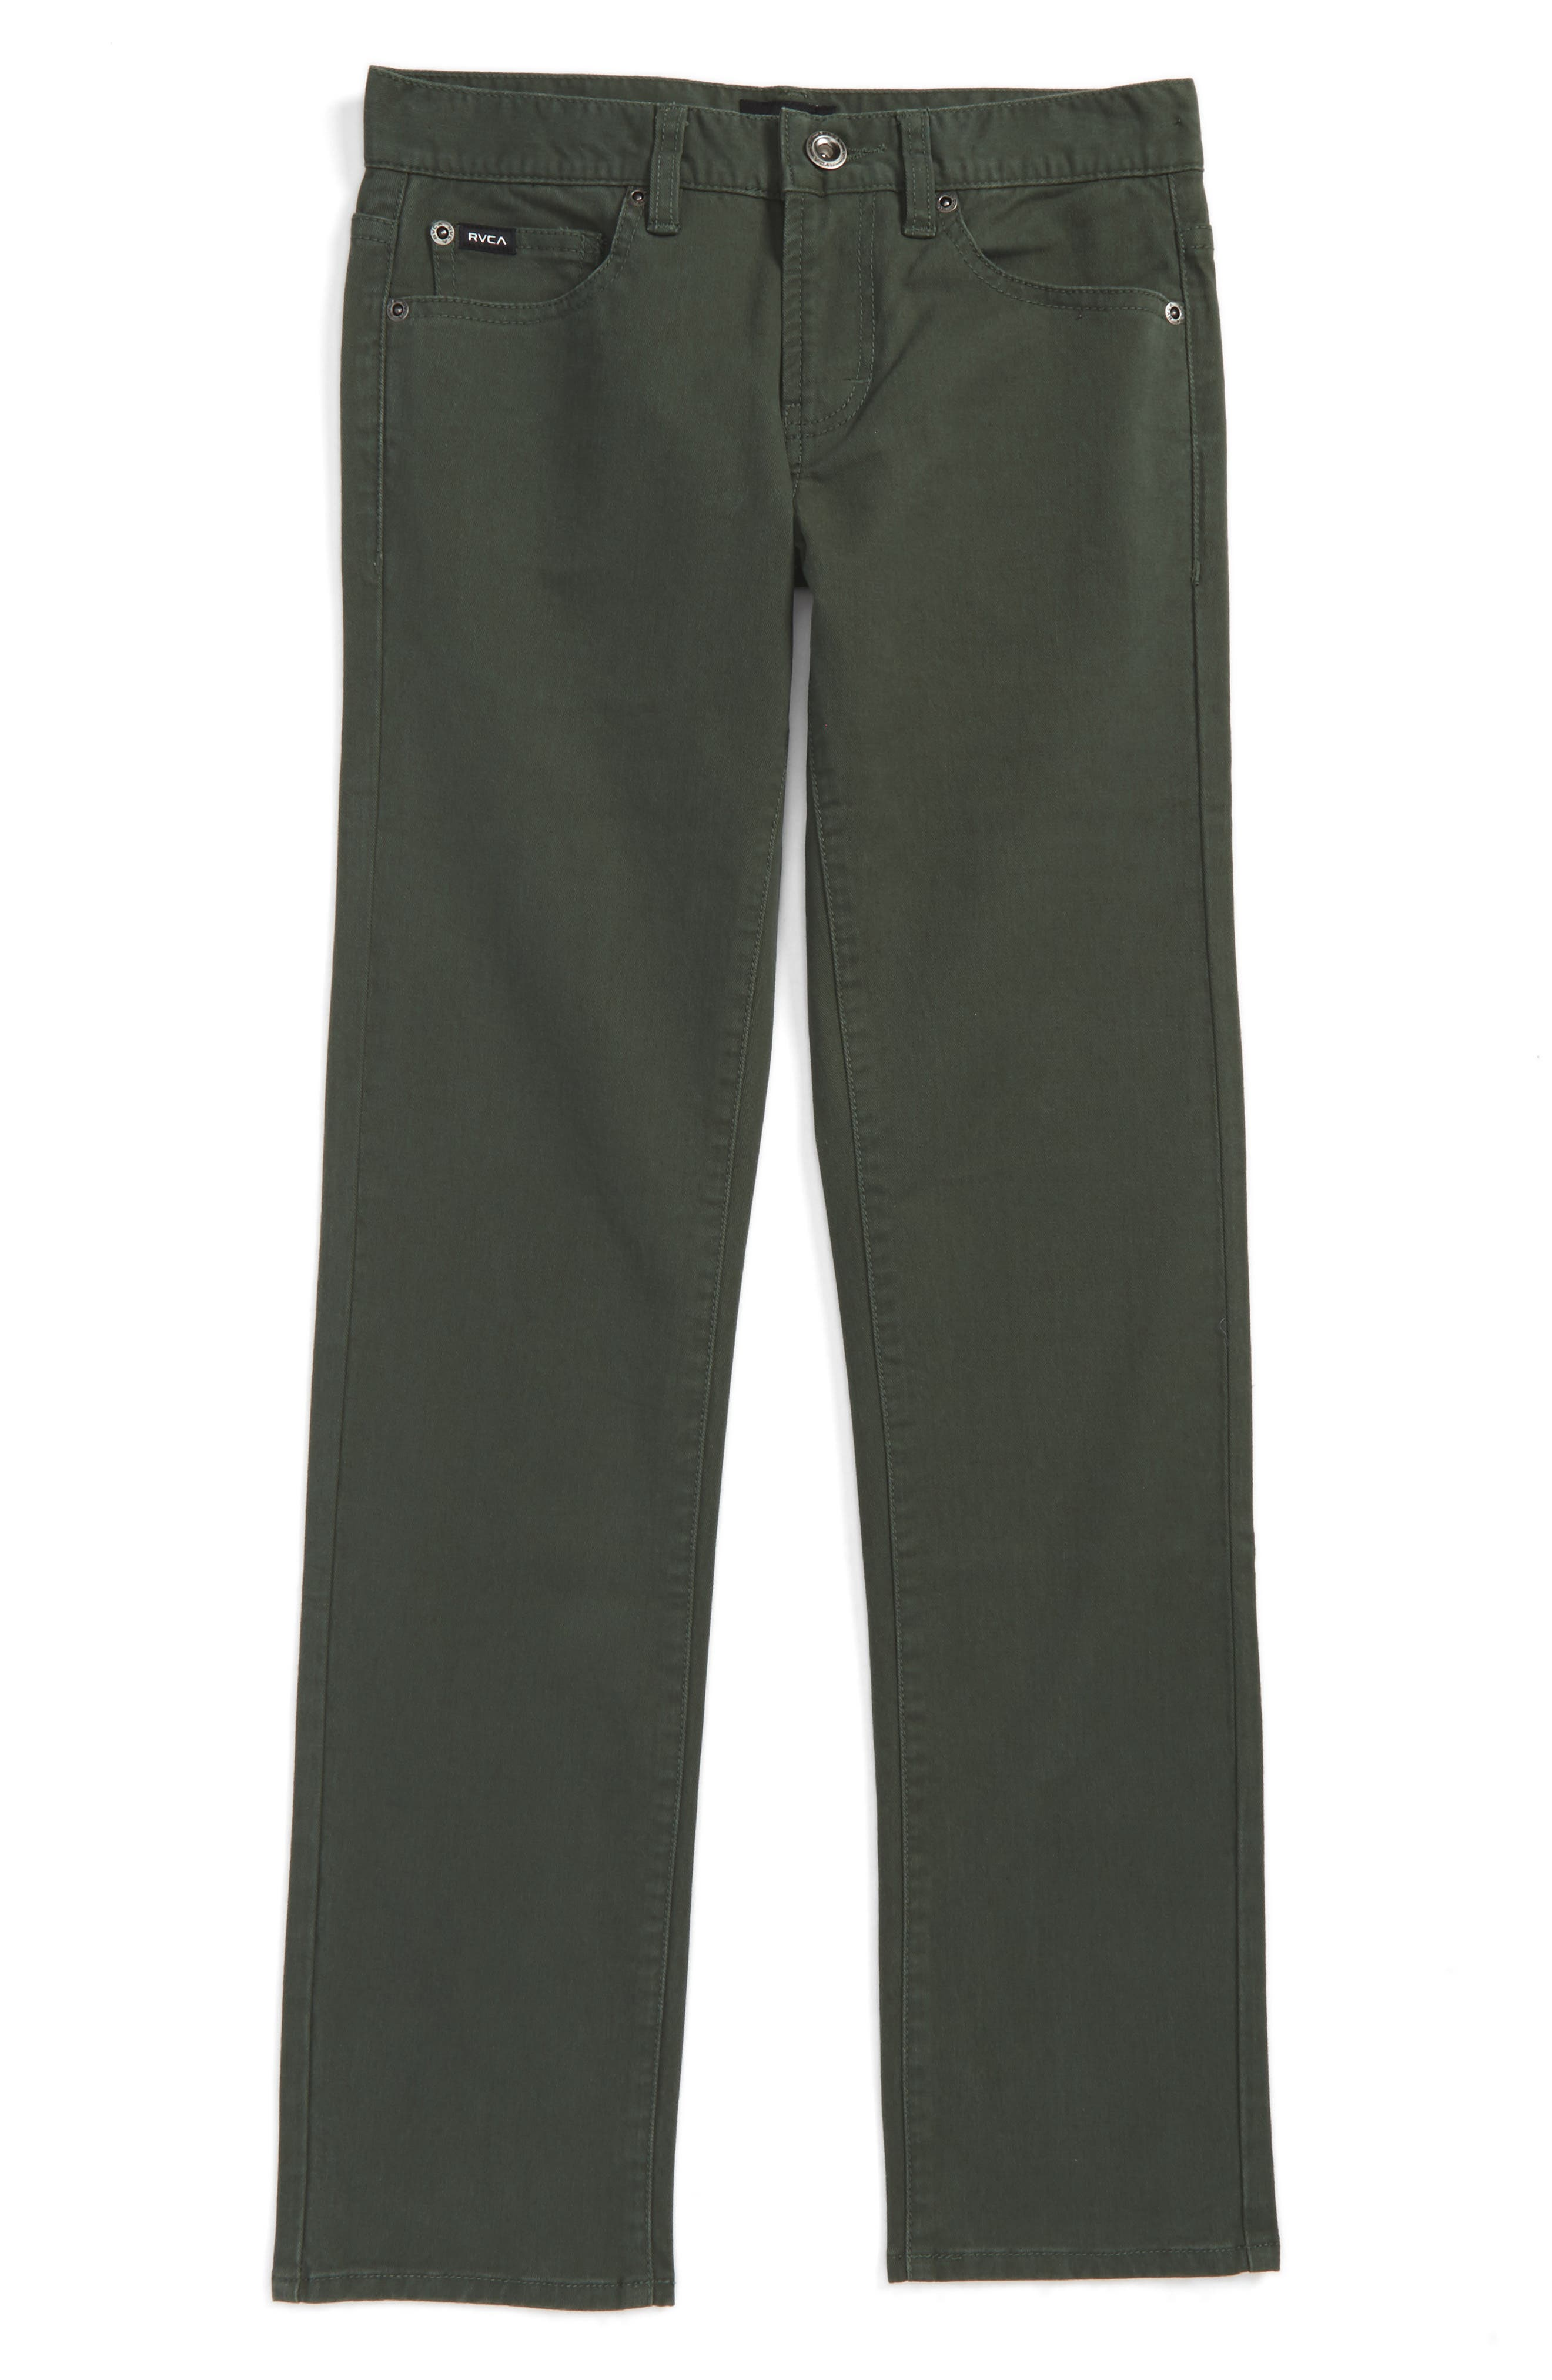 RVCA 'Daggers' Slim Fit Twill Pants (Big Boys)